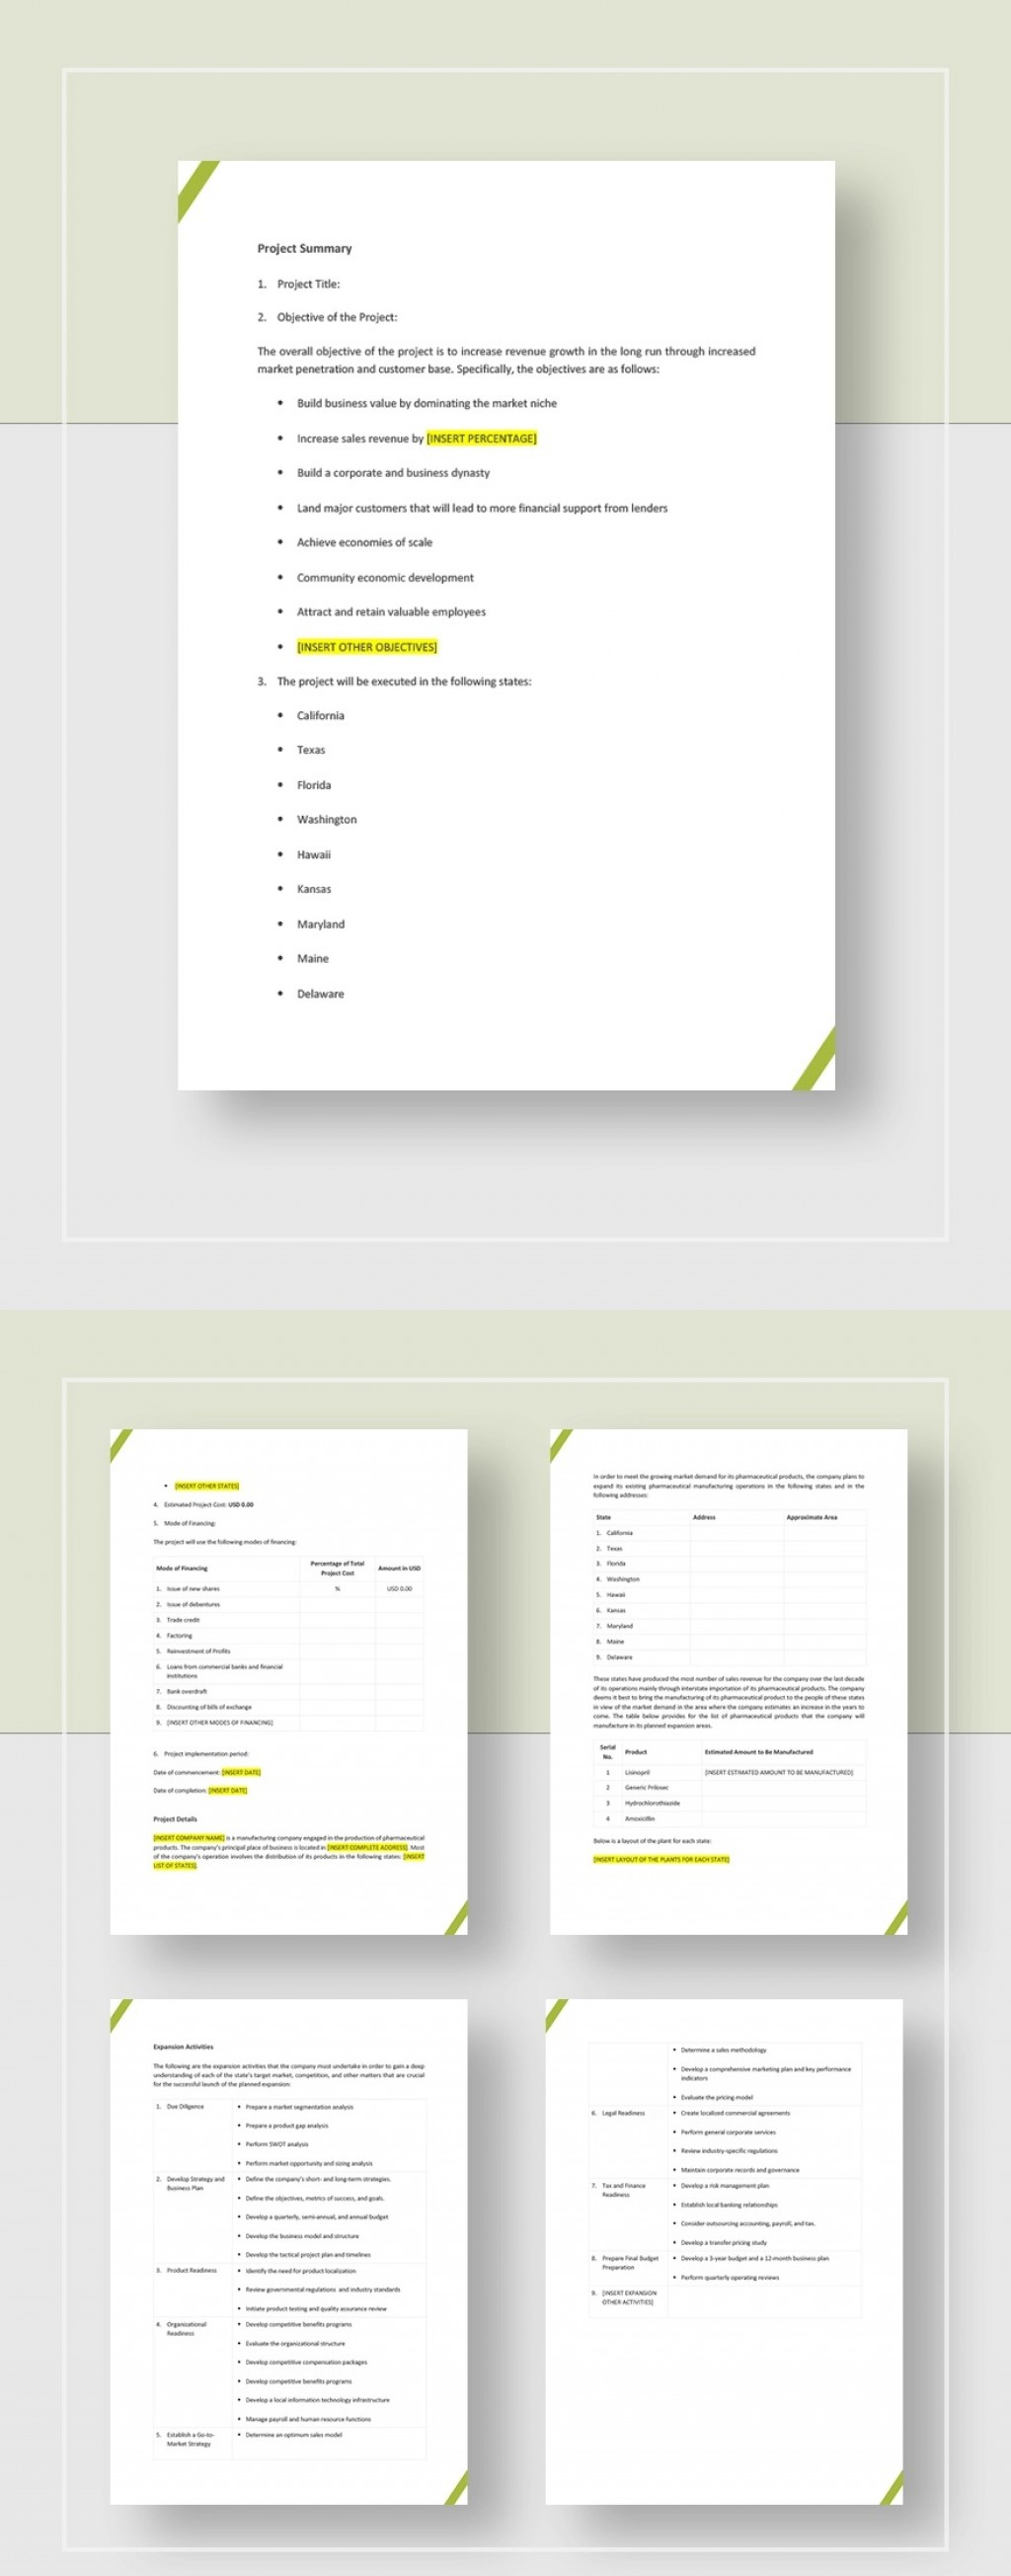 Development Project Proposal Template Jpg  Web Design & Powerpoint SampleLarge